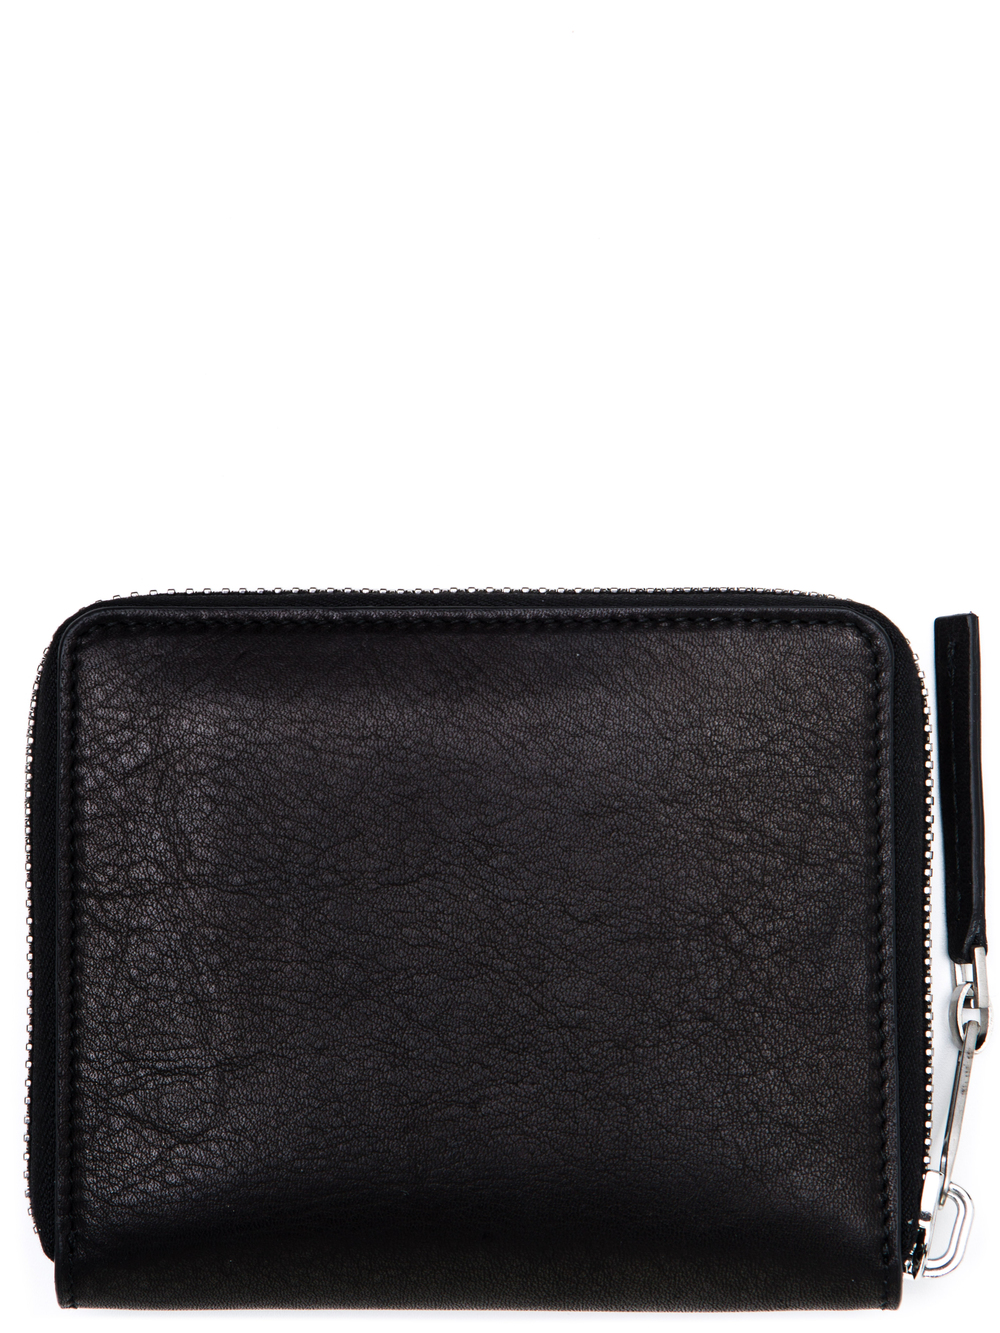 RICK OWENS SMALL ZIPPED WALLET IN BLACK CALF LEATHER